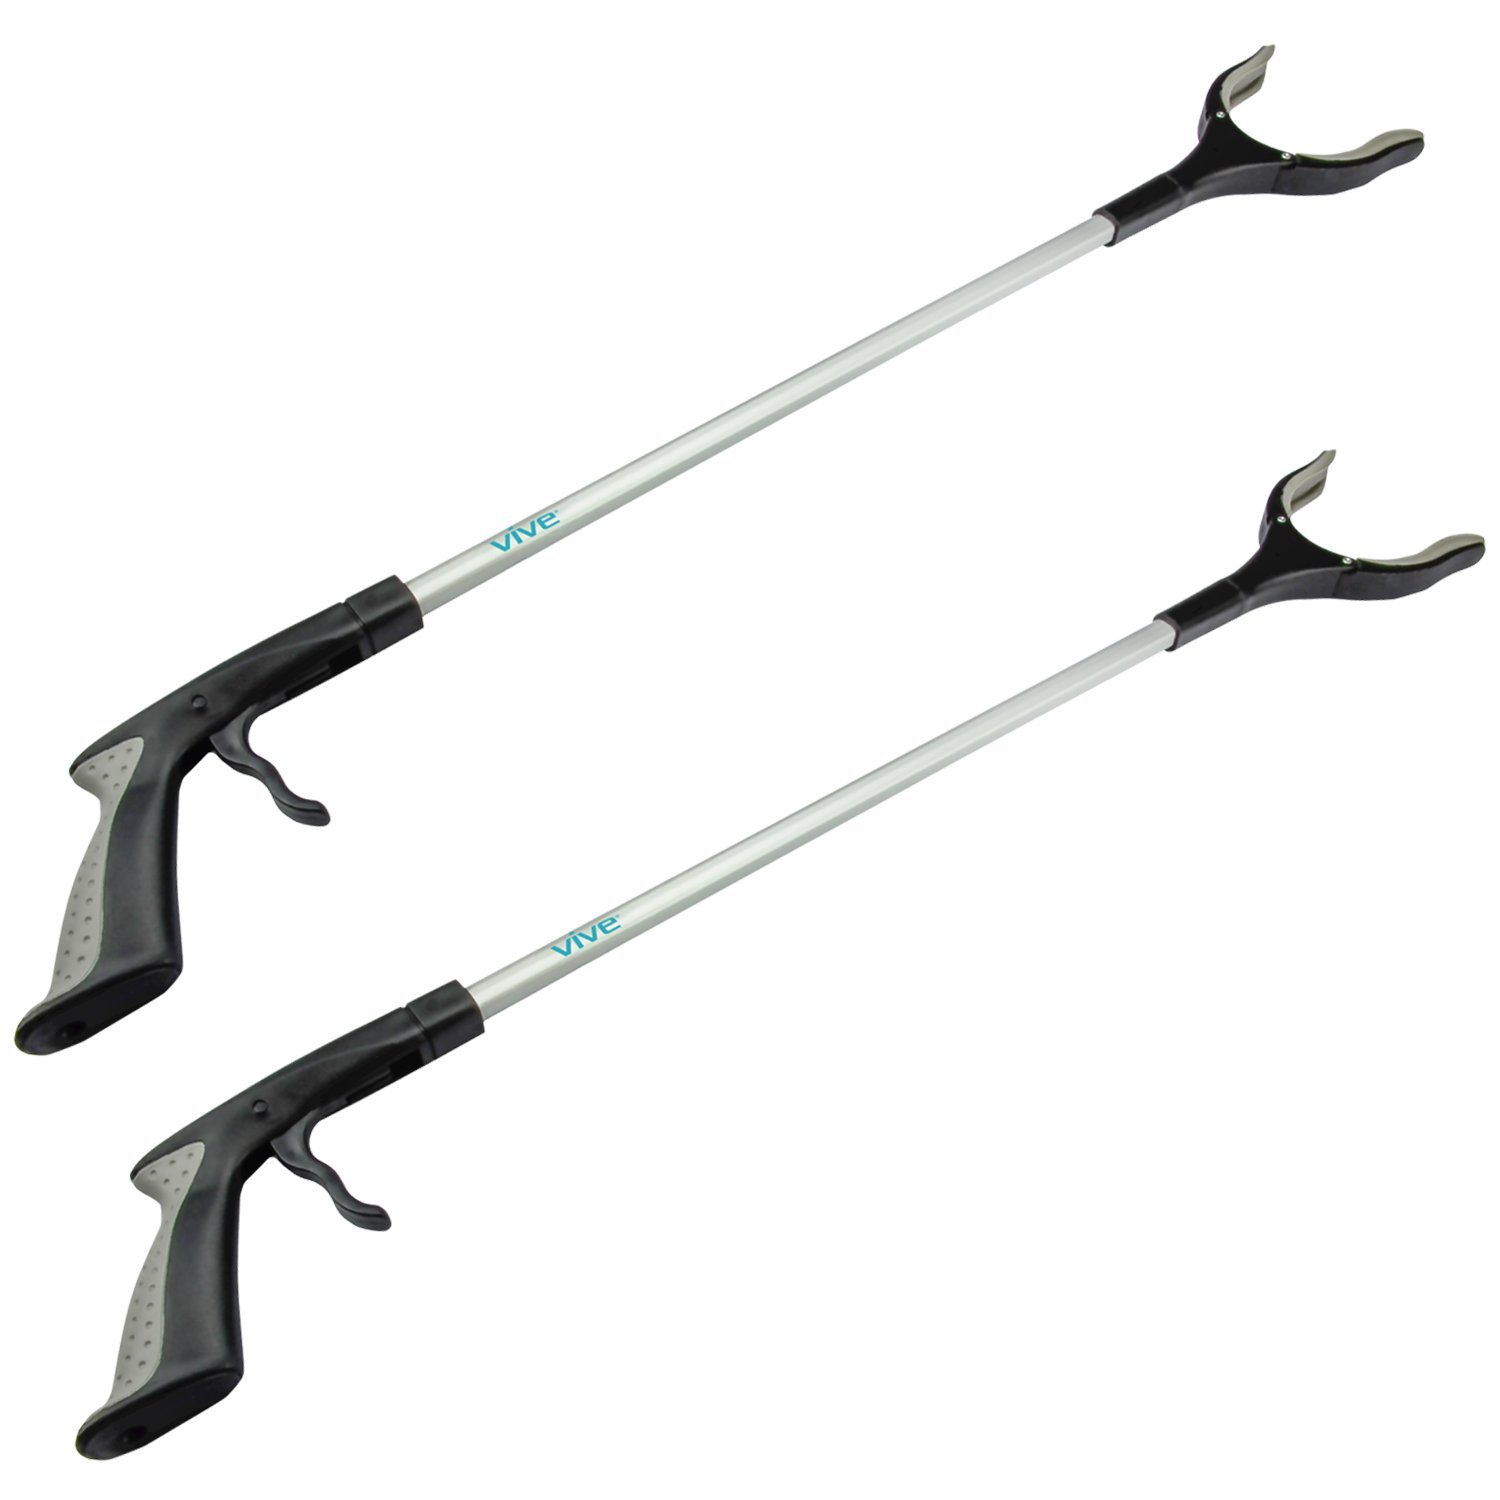 Vive Reacher Grabber - 32'' Extra Long Mobility Aid - Rotating Hand, Heavy Duty Grip Arm - Reaching Assist Tool for Trash Pickup, Litter Picker, Garden Nabber, Disabled, Handicap Arm Extension (Two)